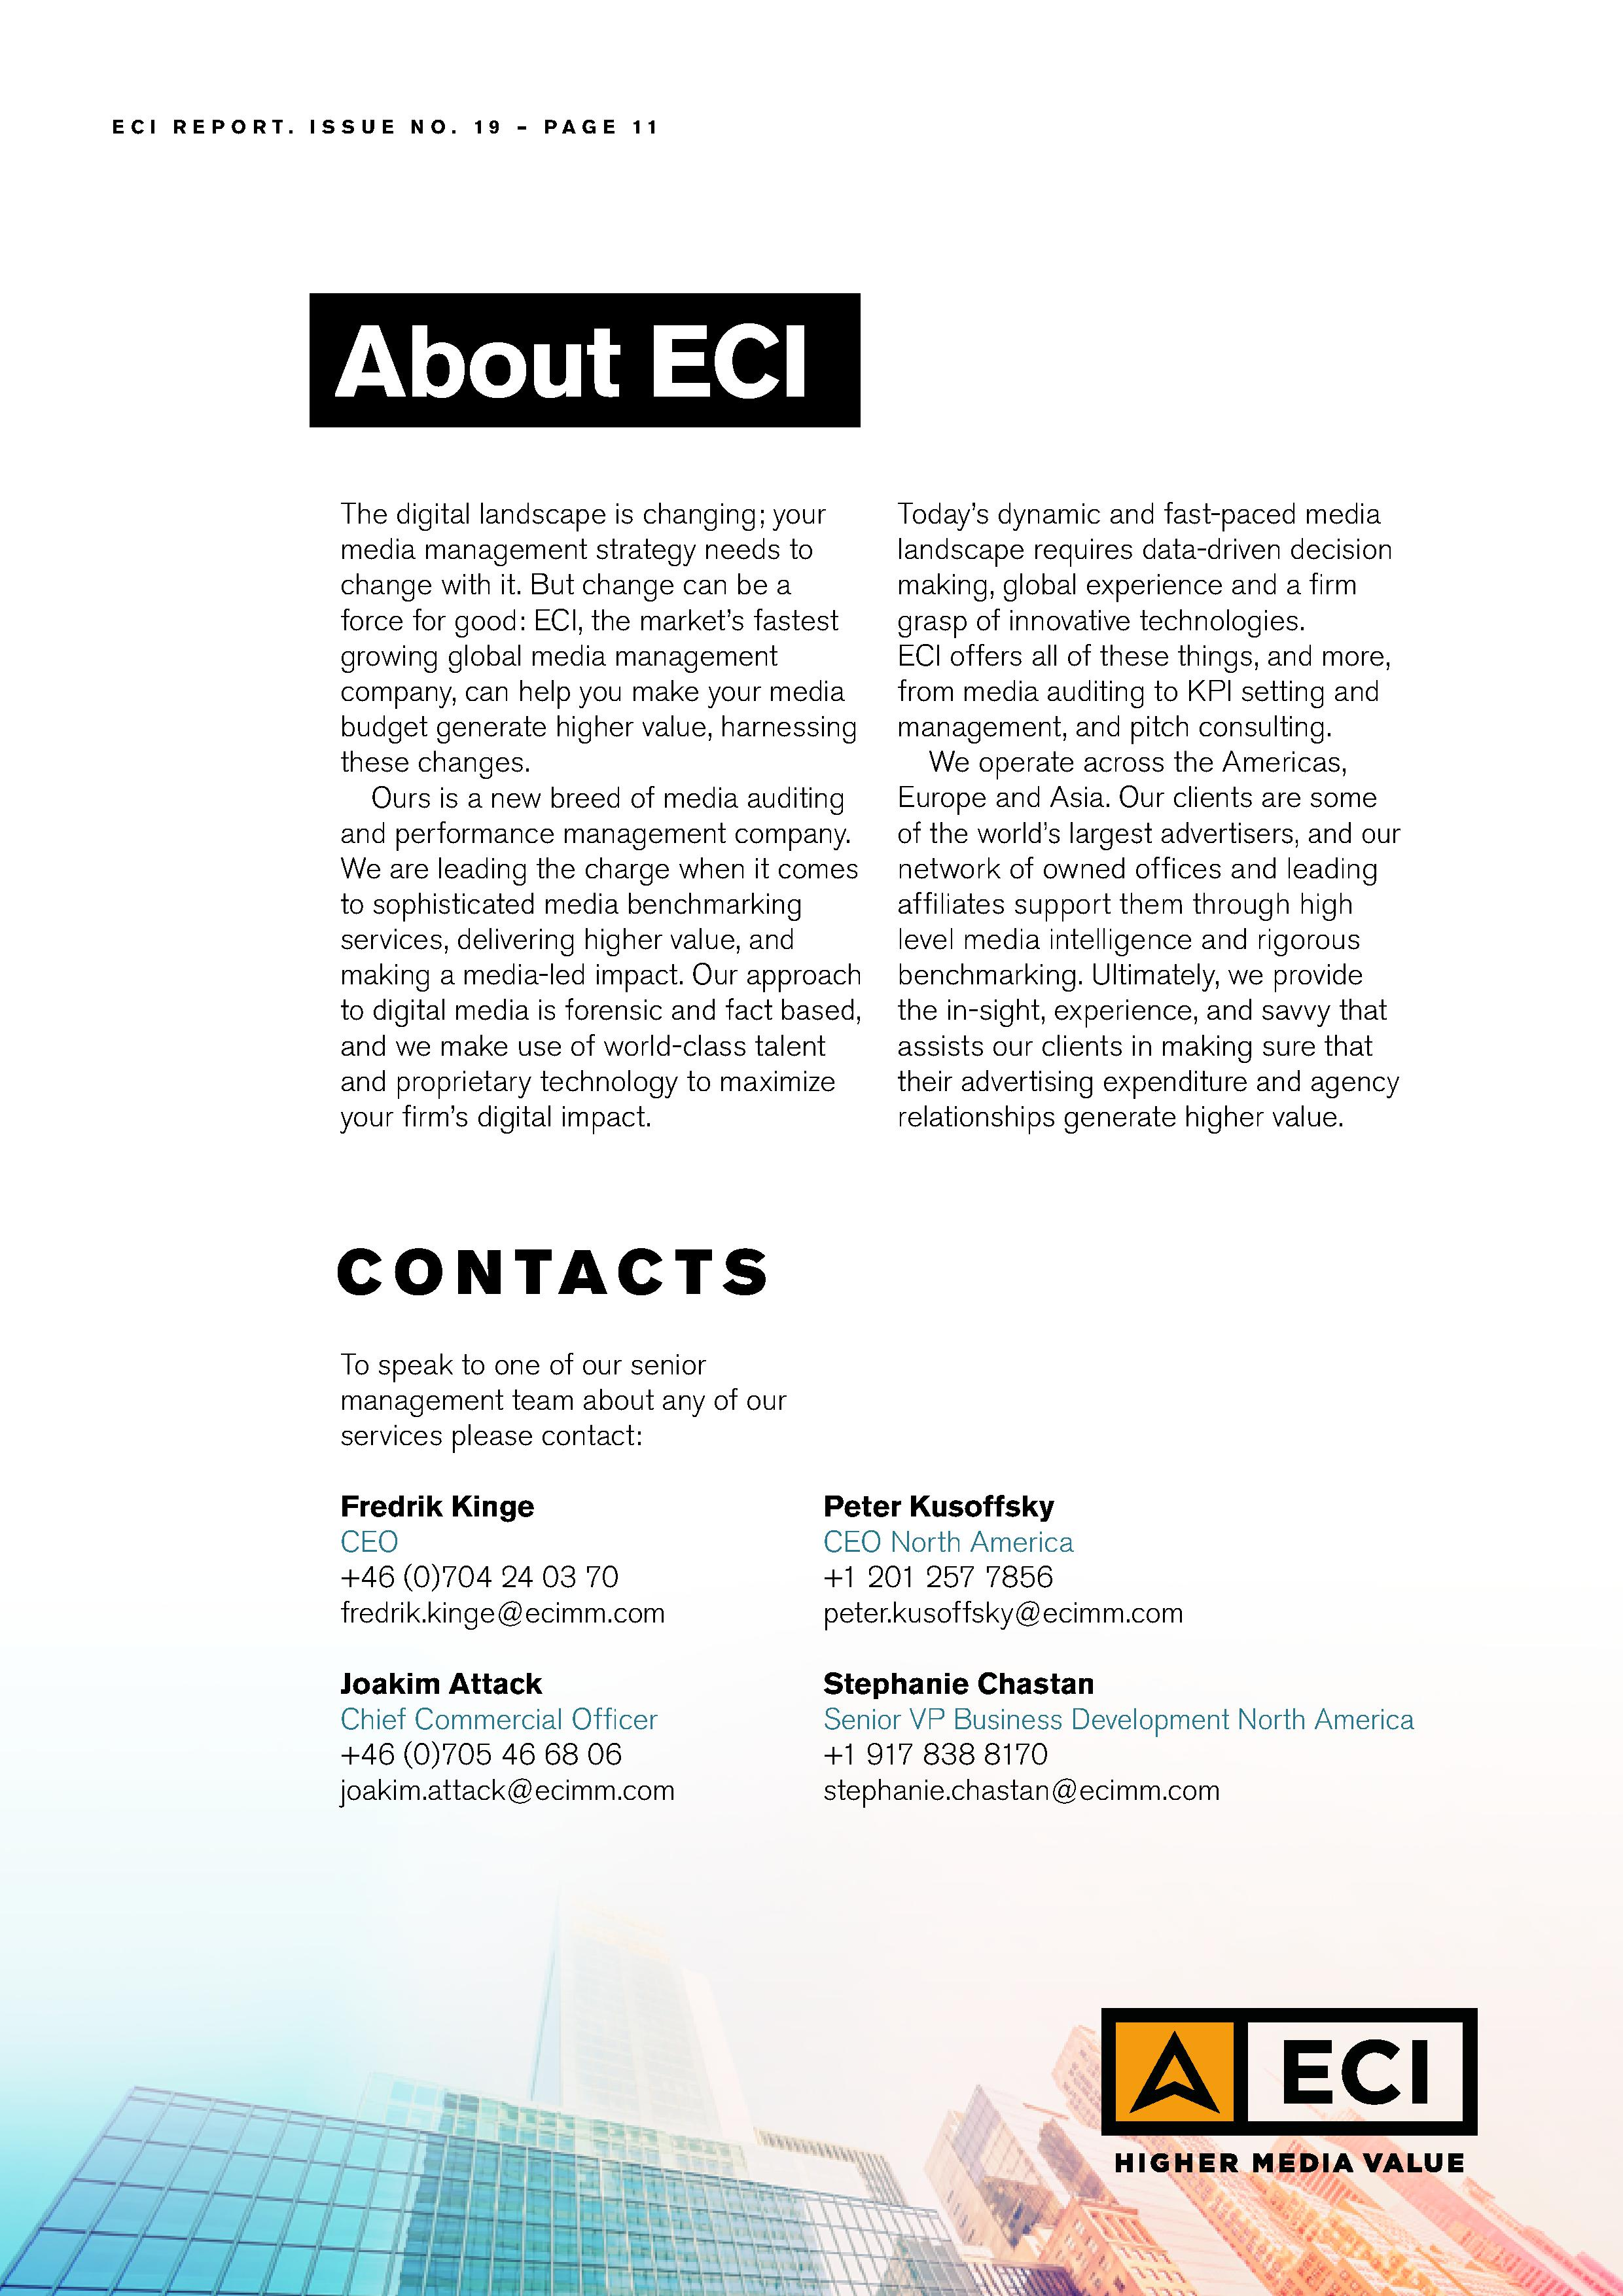 eci_report_issue19_2017011